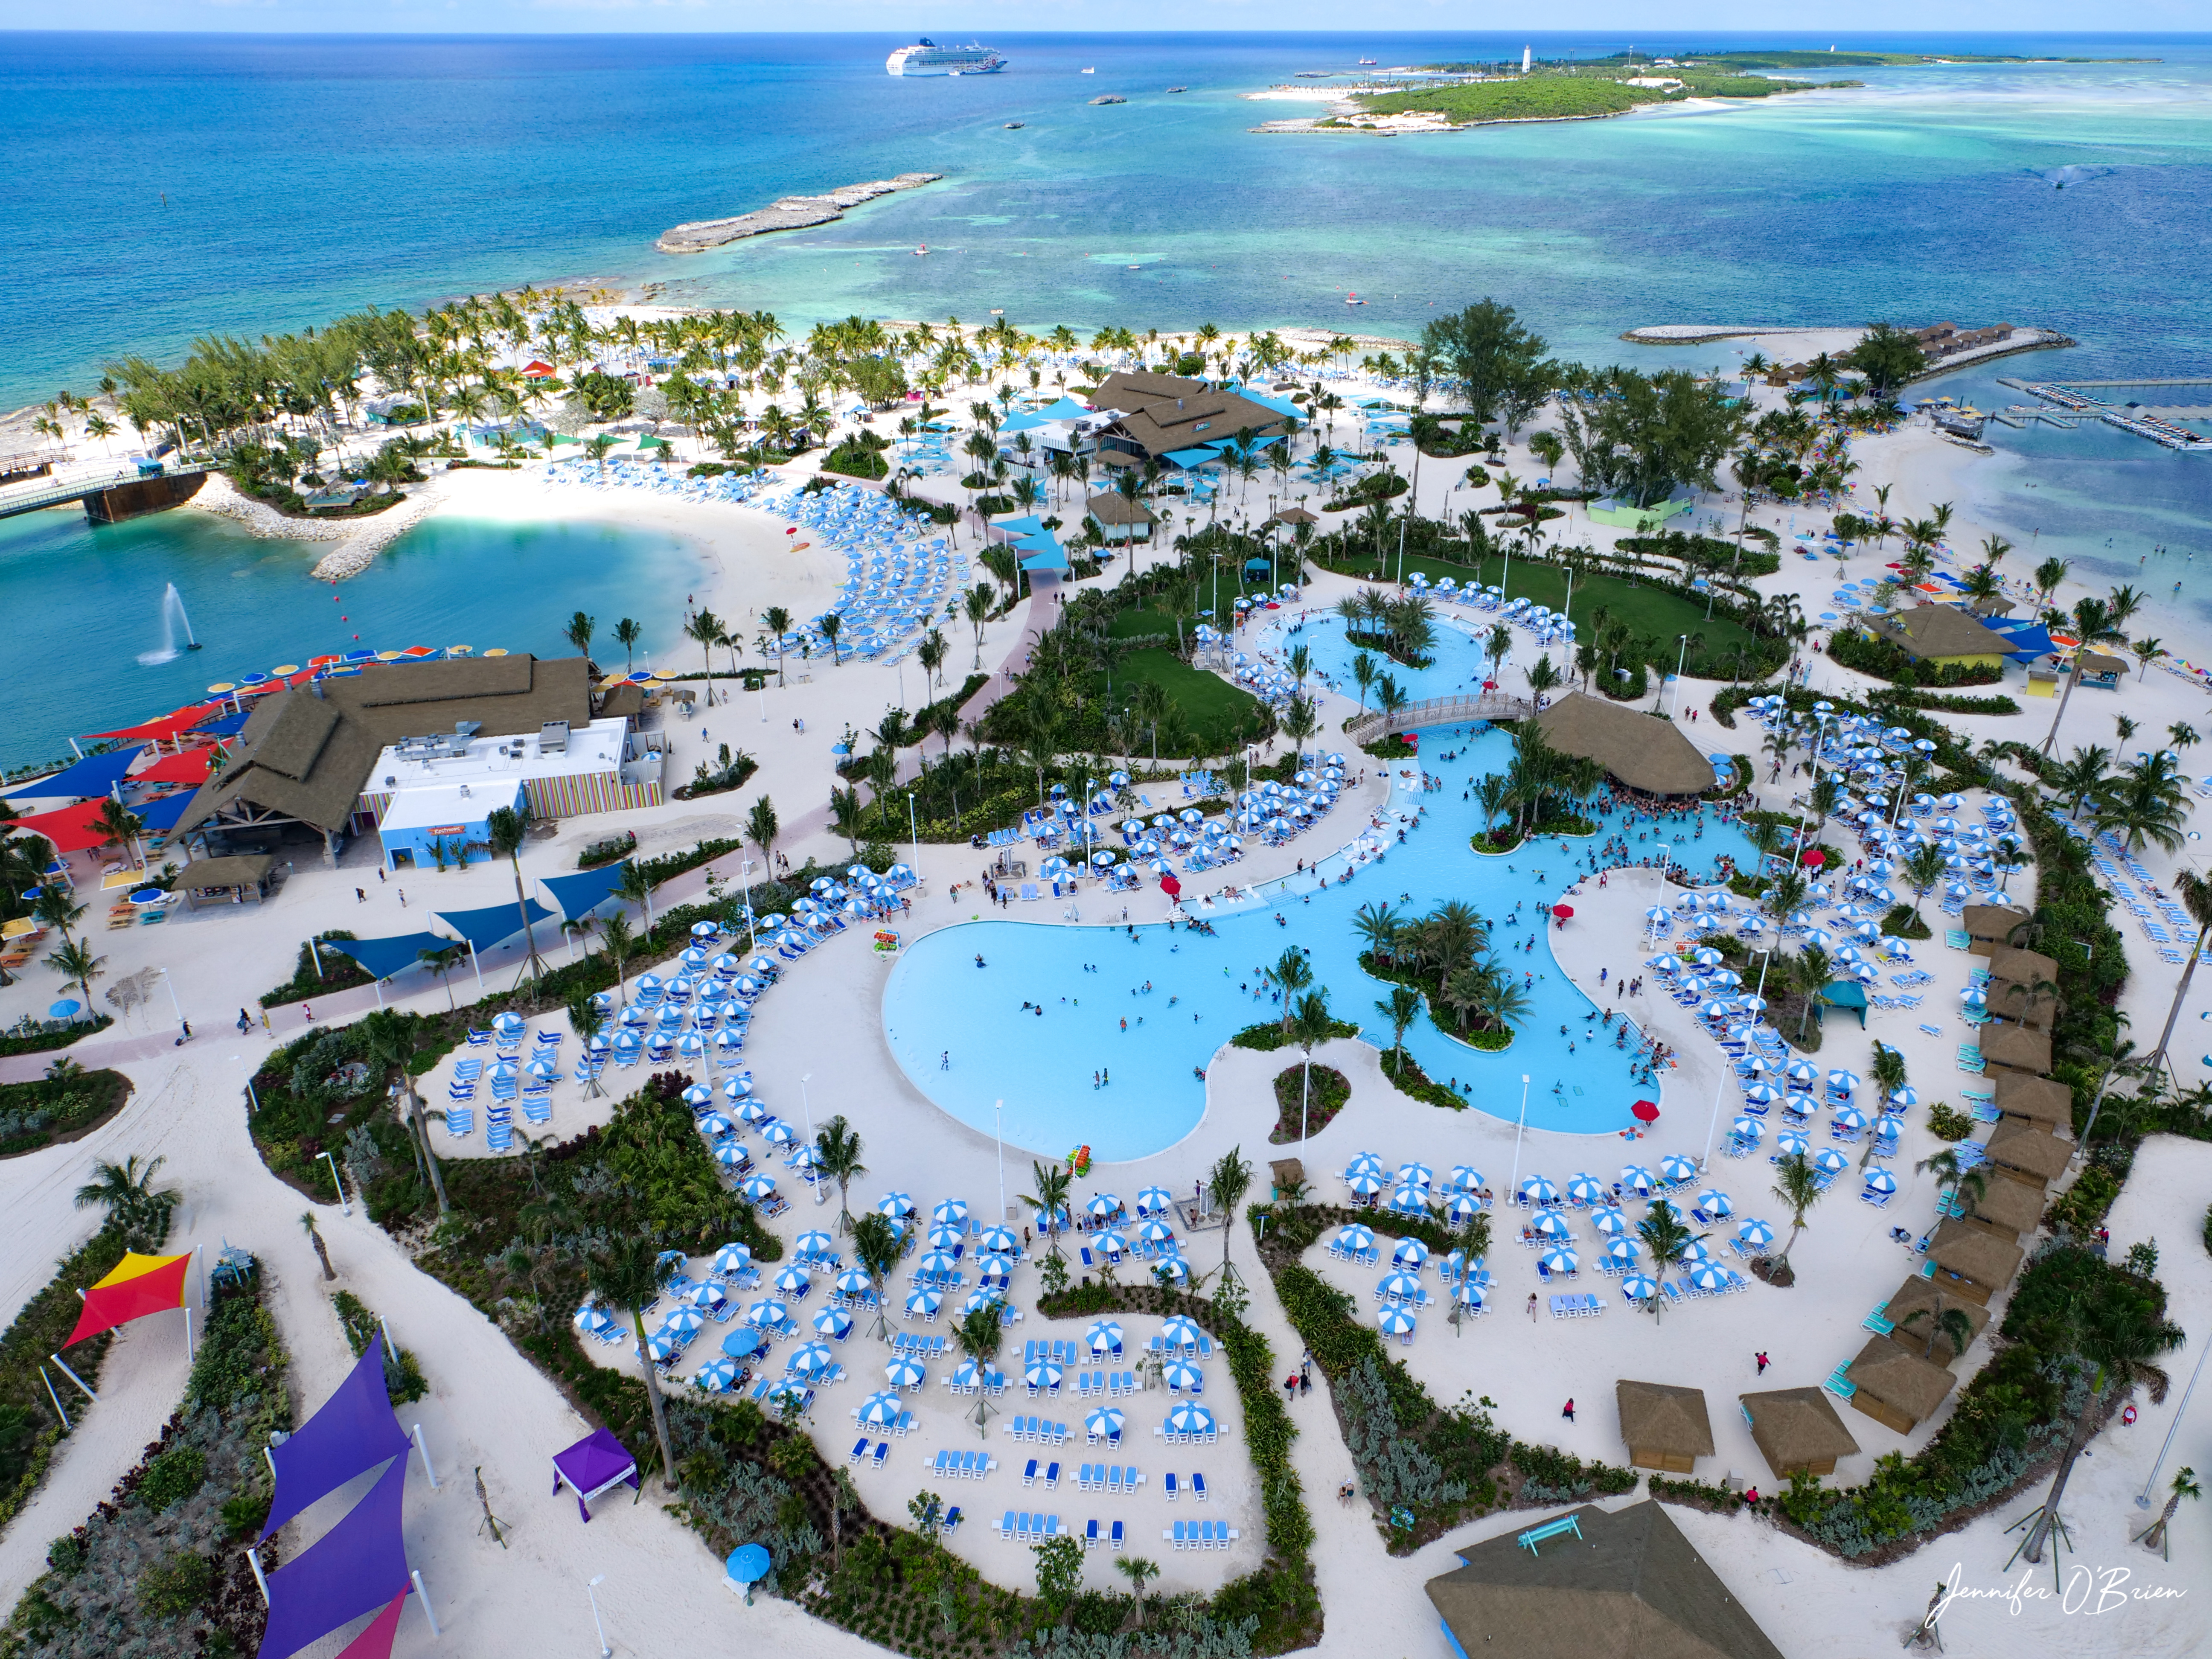 Royal Caribbean cococay bahamas 3. Oasis Lagoon is the largest freshwater pool